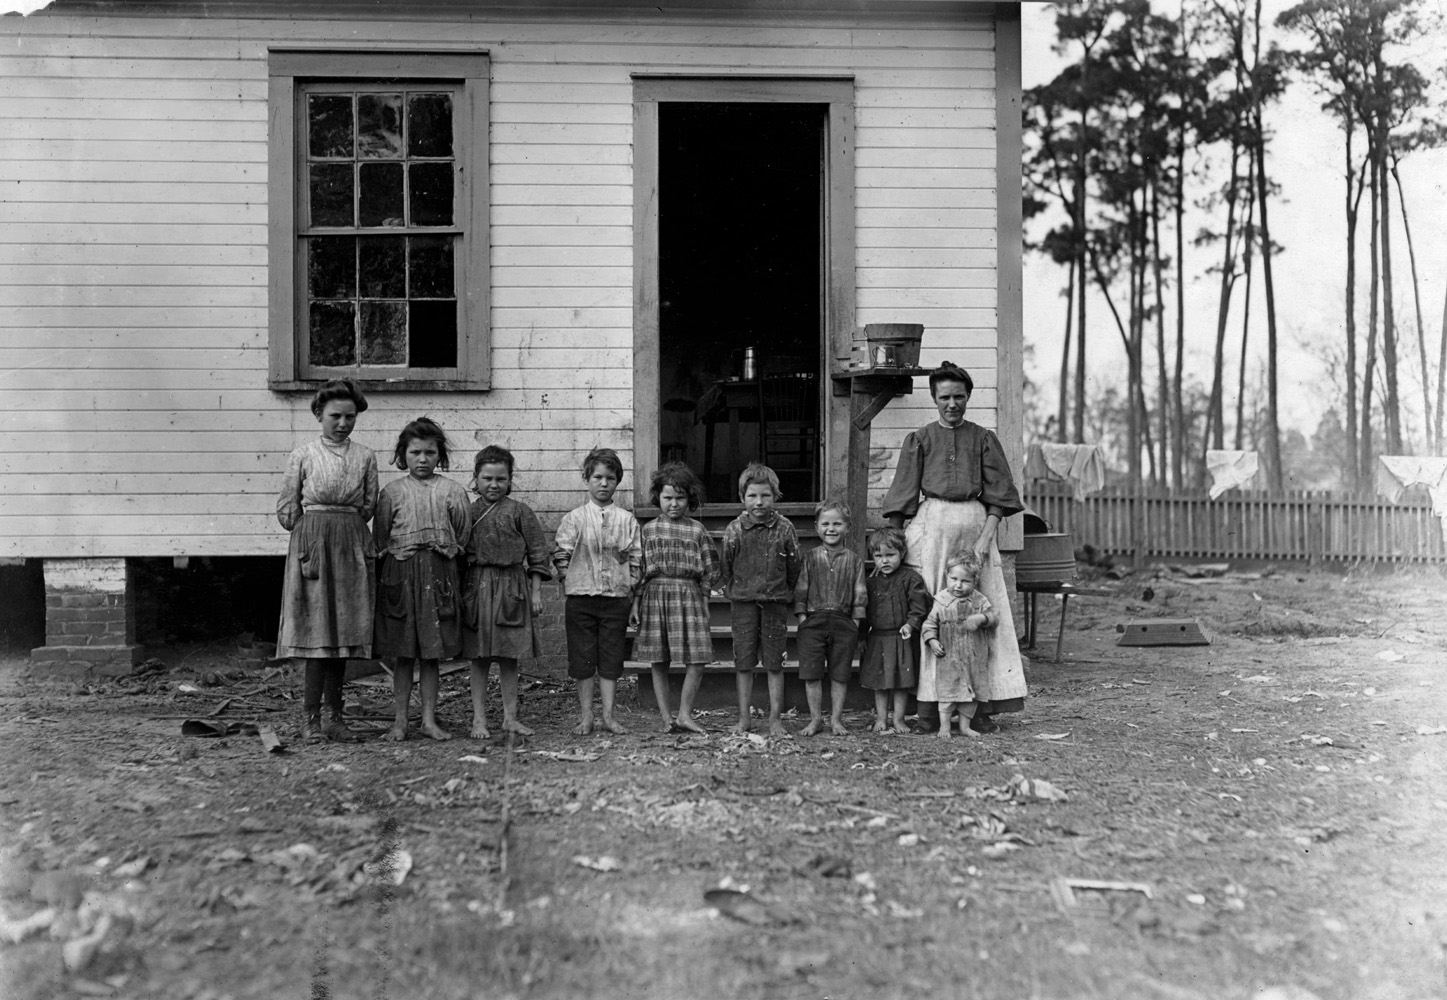 "Catherine Young, widow with nine children, six working in cotton mill, Tifton, Georgia, 1909.                                A family working in the Tifton (Ga.) Cotton Mill. Mrs. A.J. young works in mill and at home. Nell (oldest girl) alternates in mill with mother. Mammy (next girl) runs 2 sides. Mary (next) runs 1 1/2 sides. Elic (oldest boy) works regularly. Eddie (next girl) helps in mill, sticks on bobbins. Four smallest children not working yet. The mother said she earns $4.50 a week and all the children earn $4.50 a week. Husband died and left her with 11 children. 2 of them went off and got married. The family left the farm 2 years ago to work in the mill. January 22, 1909.  —Hine's original caption                               ""My mother told me about the day she and her brothers and sisters went to the orphan's home, and how she was crying. She said she had helped with the baby all day, and then she never saw her again. I told my Mama that her mother had no choice, because there wasn't any way they could make a living. So that's when she gave them away."" —Daughter of one of the Young children"